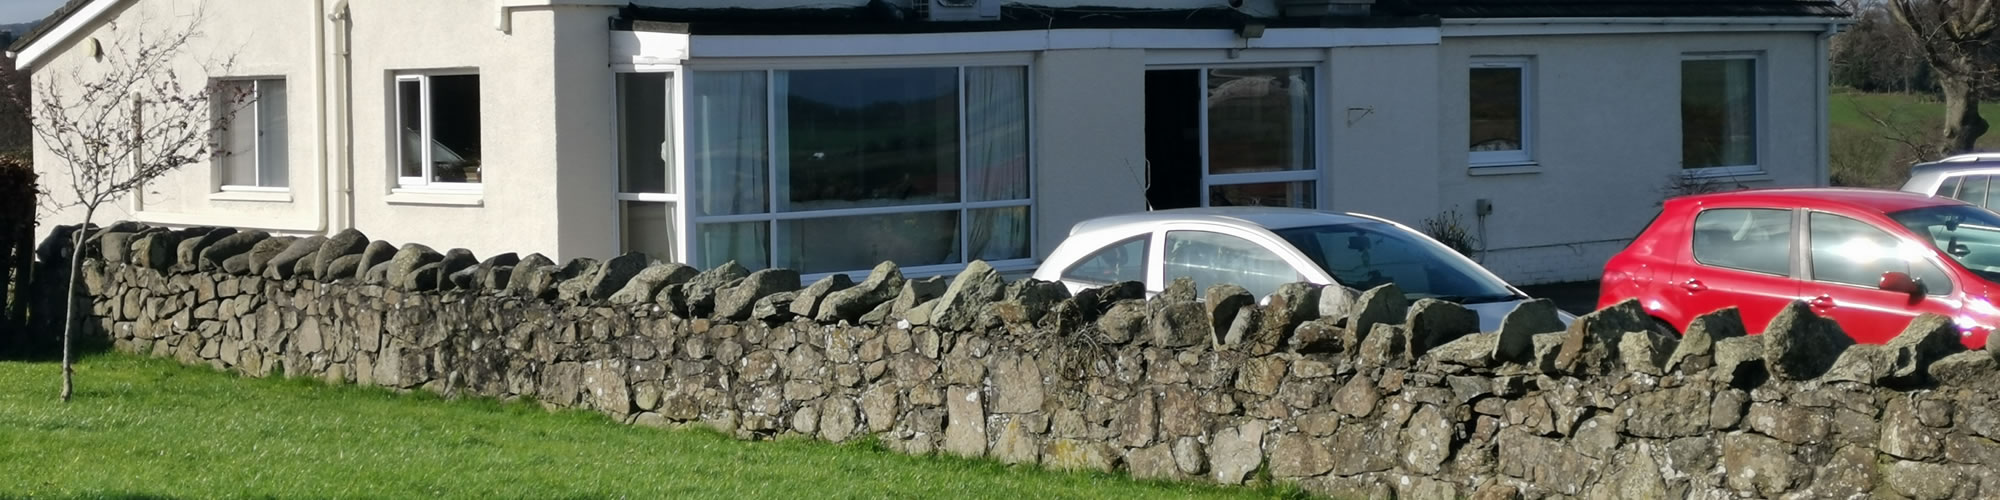 Aran House Bed and Breakfast Linlithgow